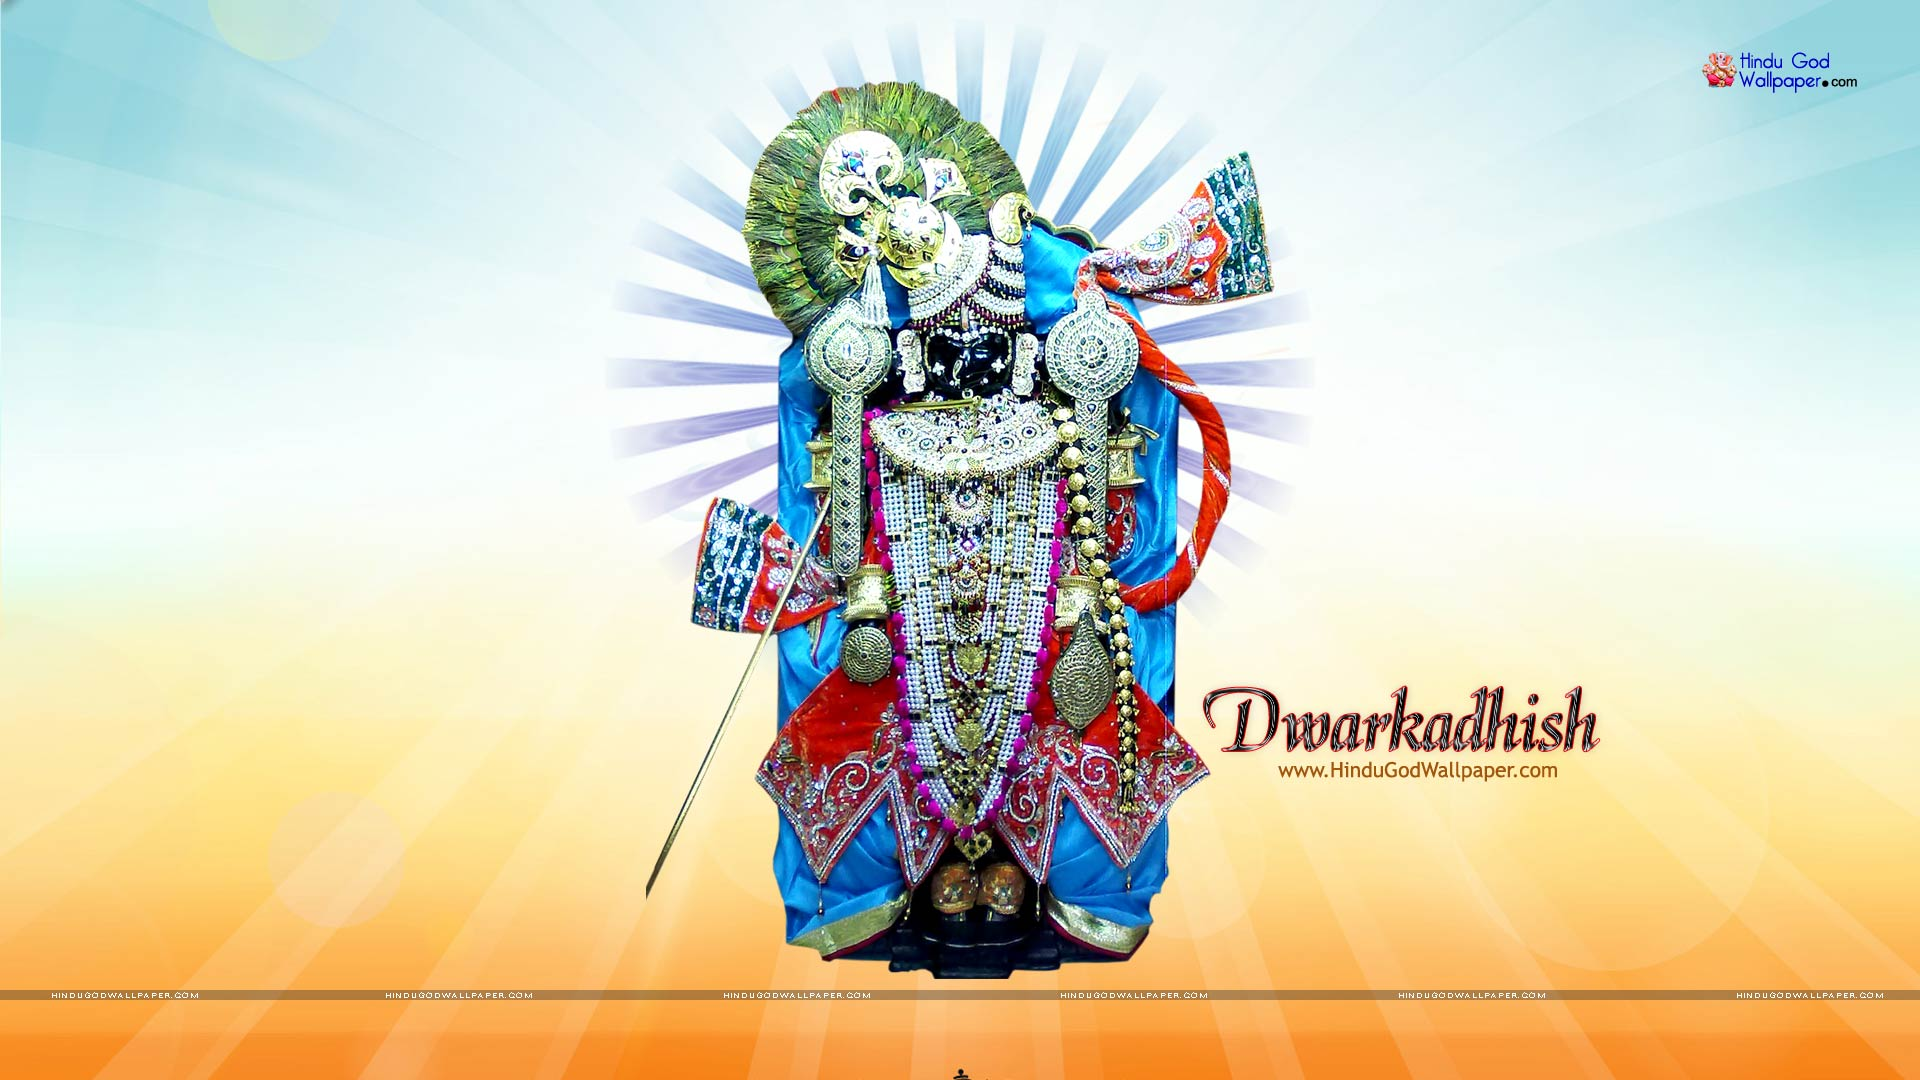 Dwarkadhish HD